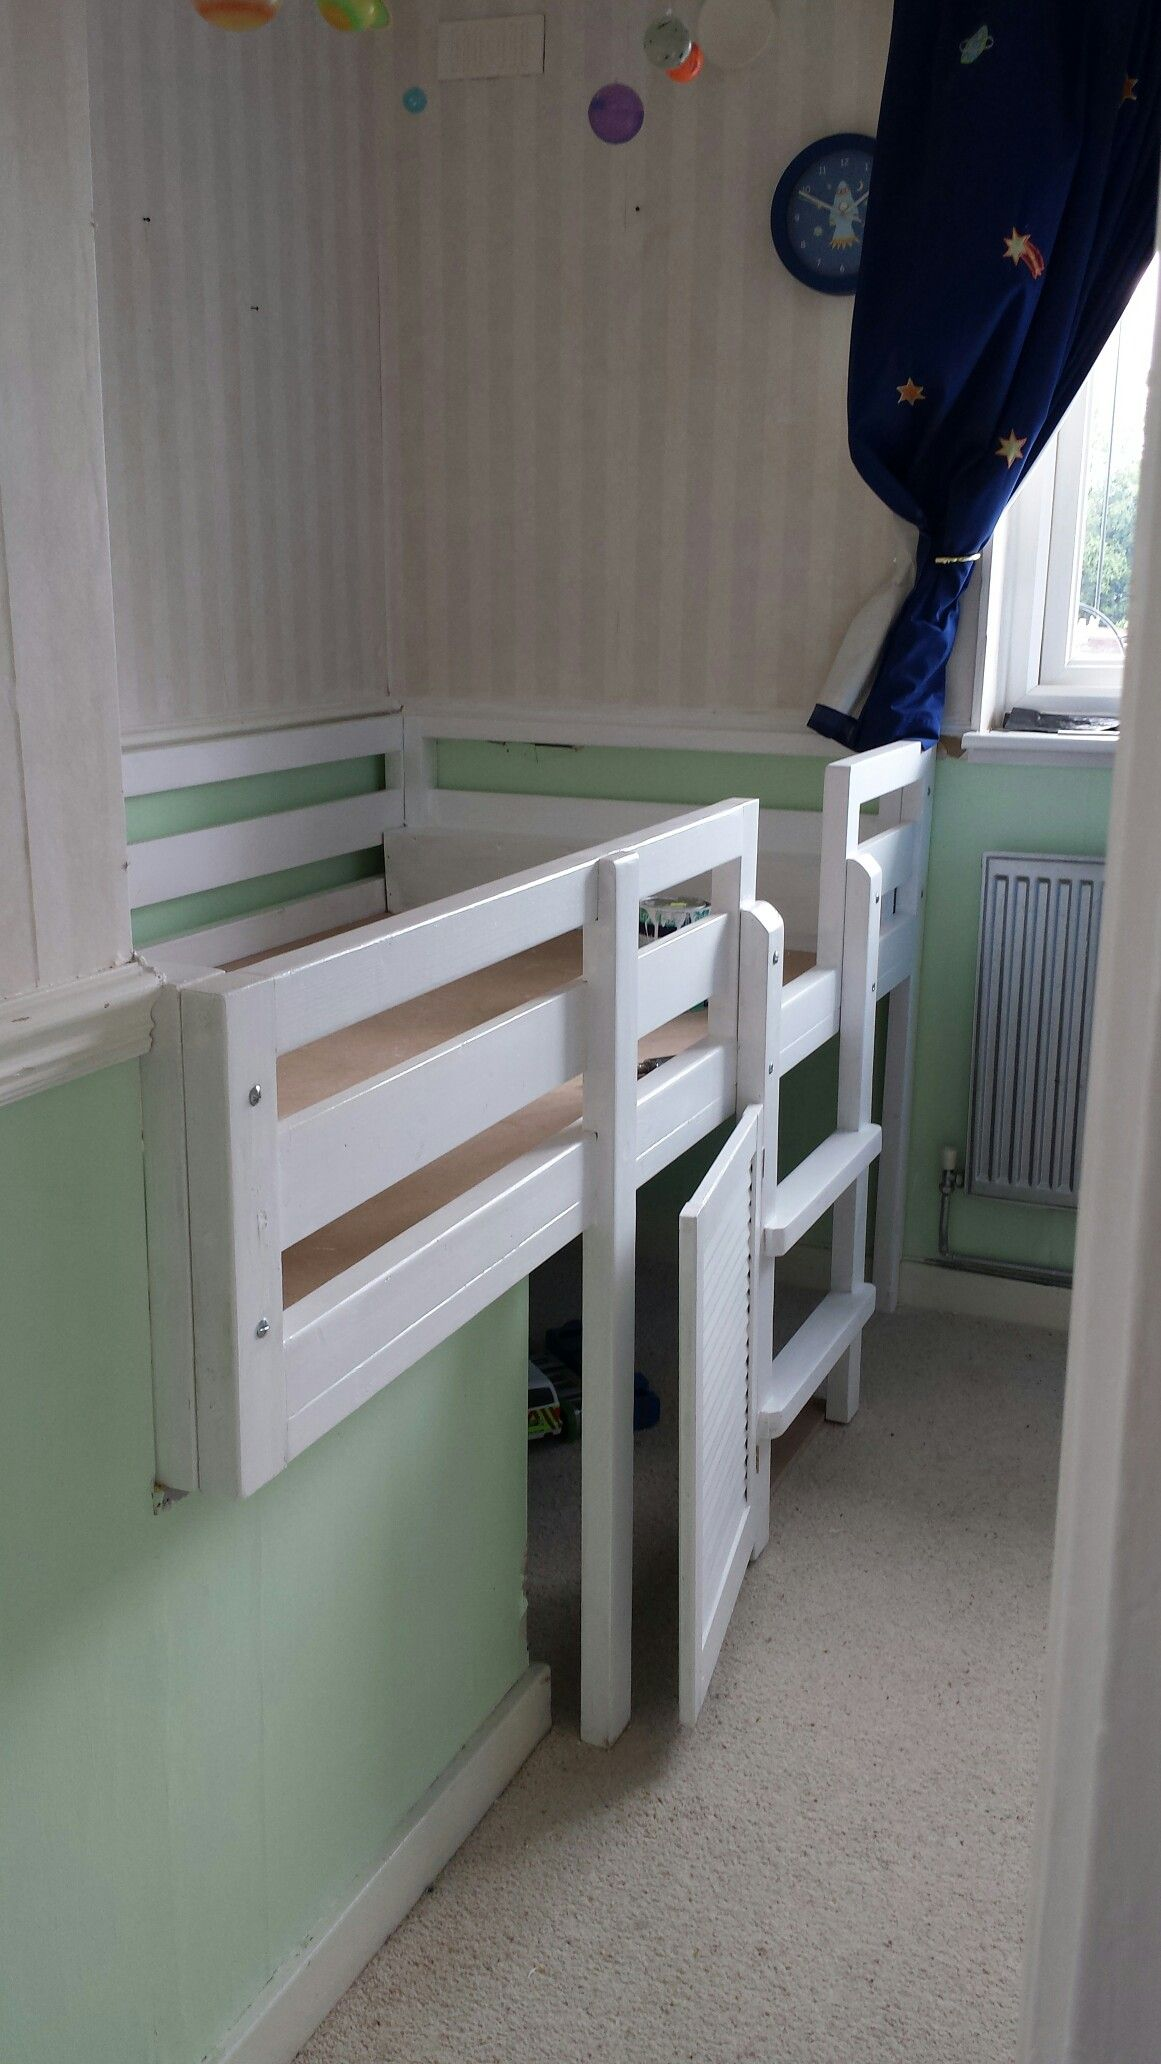 Bed Over Stair Box With Storage And Stairs: Our Custom Designed Bed To Incorporate Stair Bulkhead